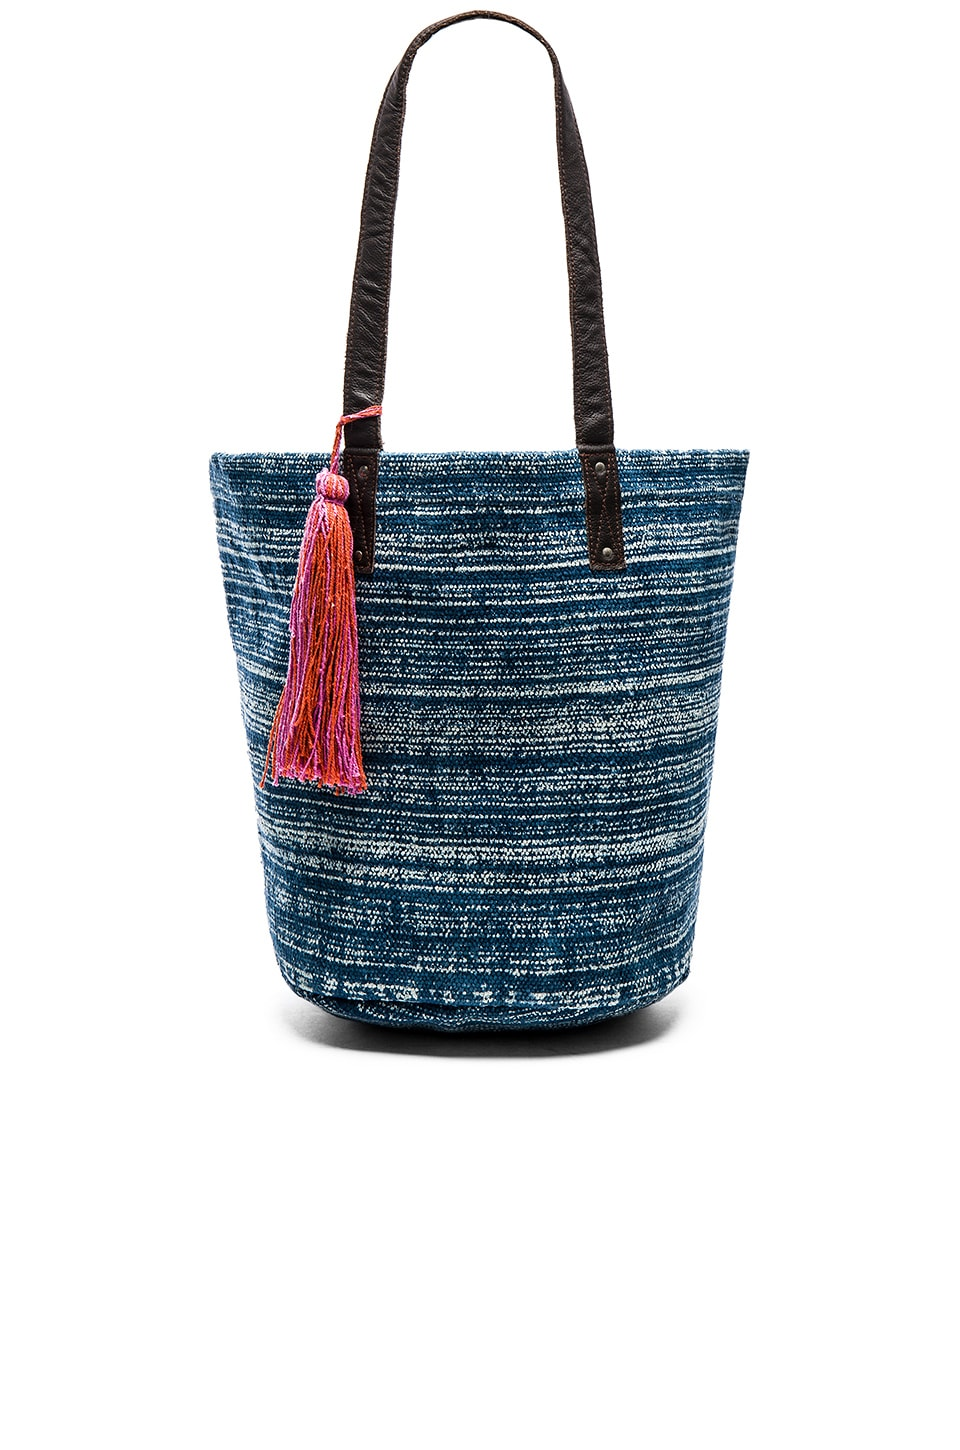 ale by alessandra Ghana Tote in Blue & White